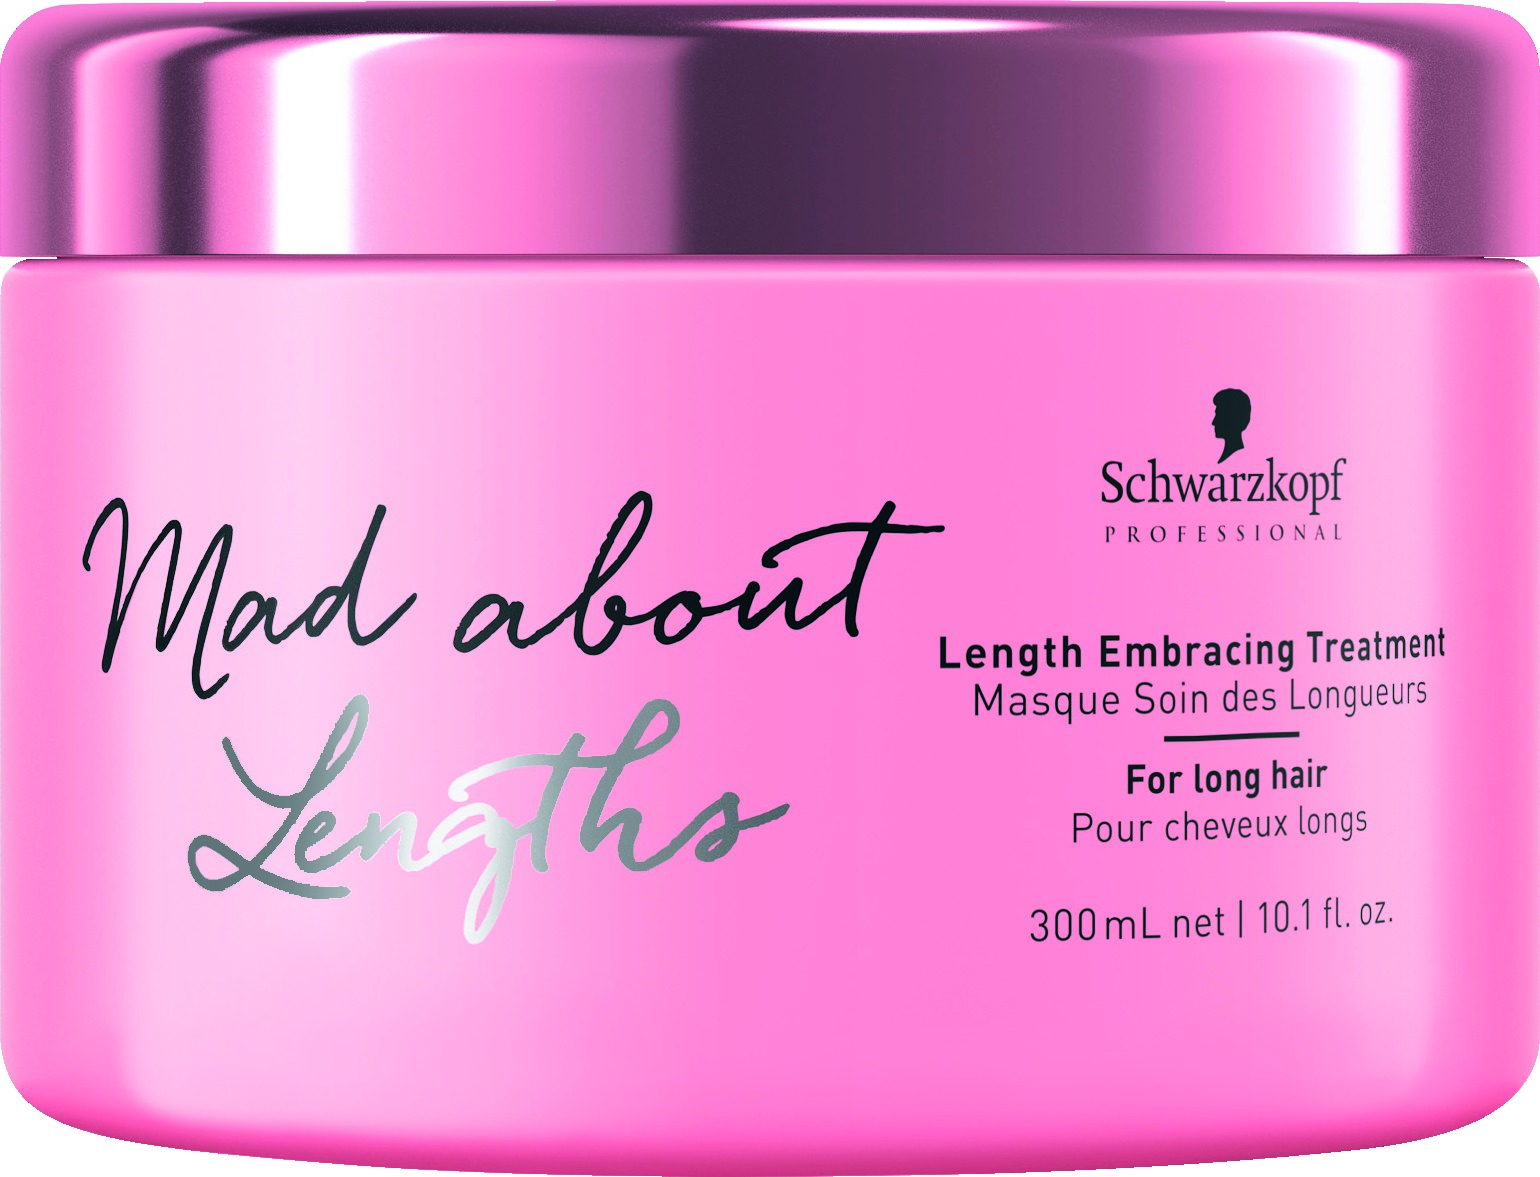 MadAbout lengths MadAbout Tiegel 300ml Length Embracing Treatment 02 HR